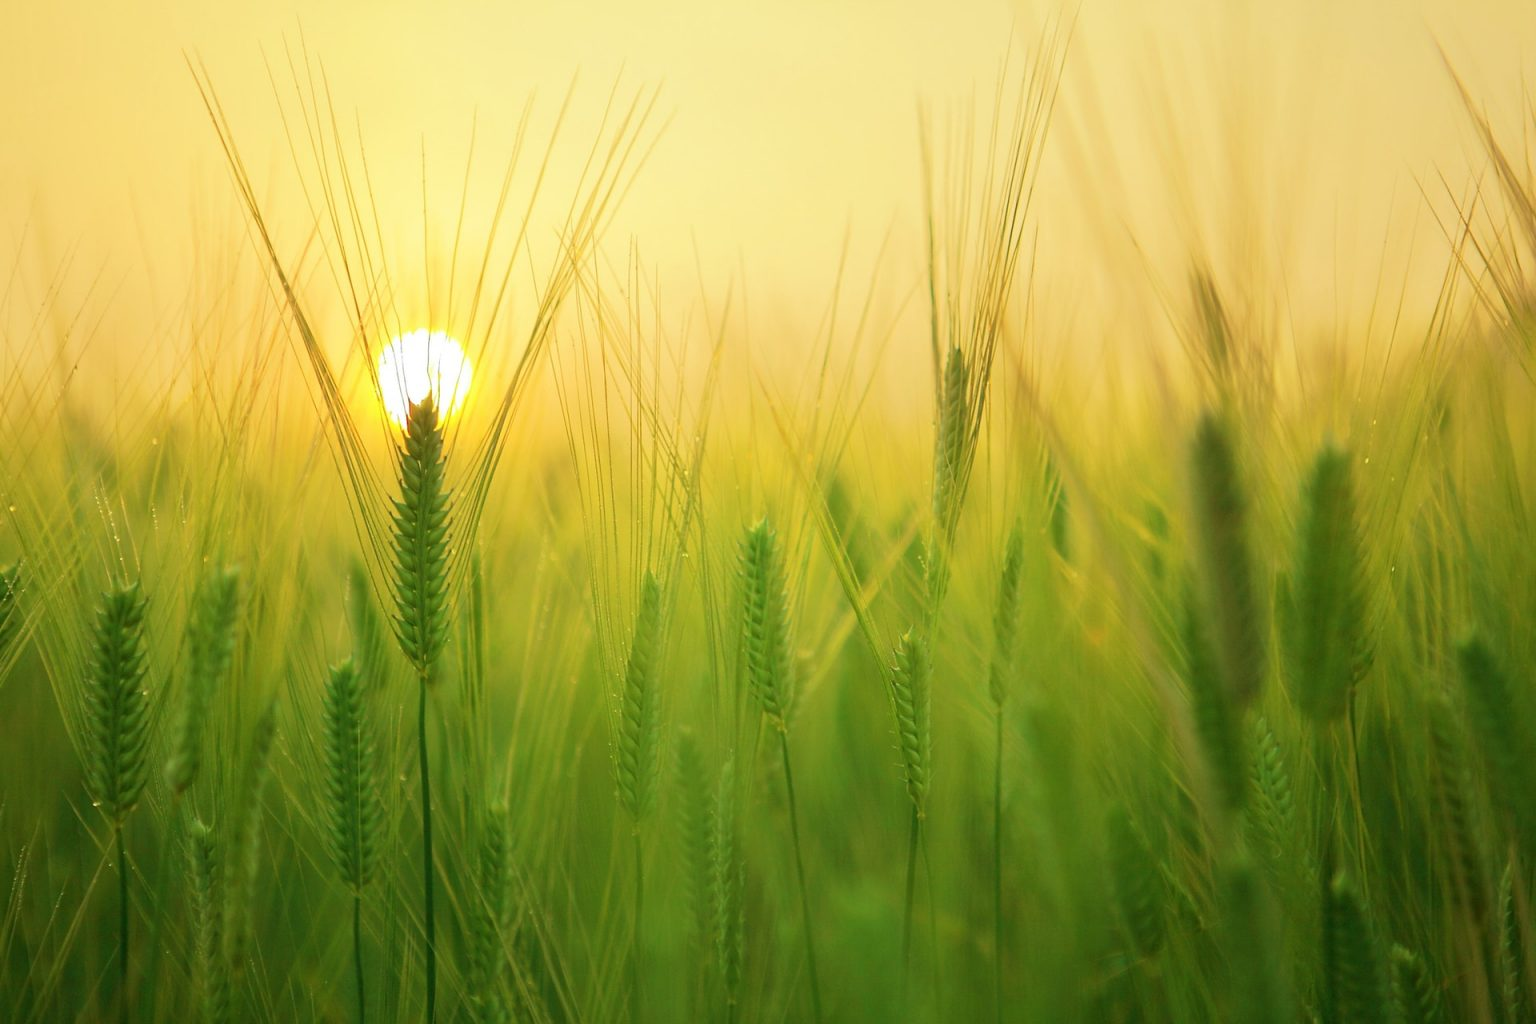 Image: Green wheat, with the sun rising behind it